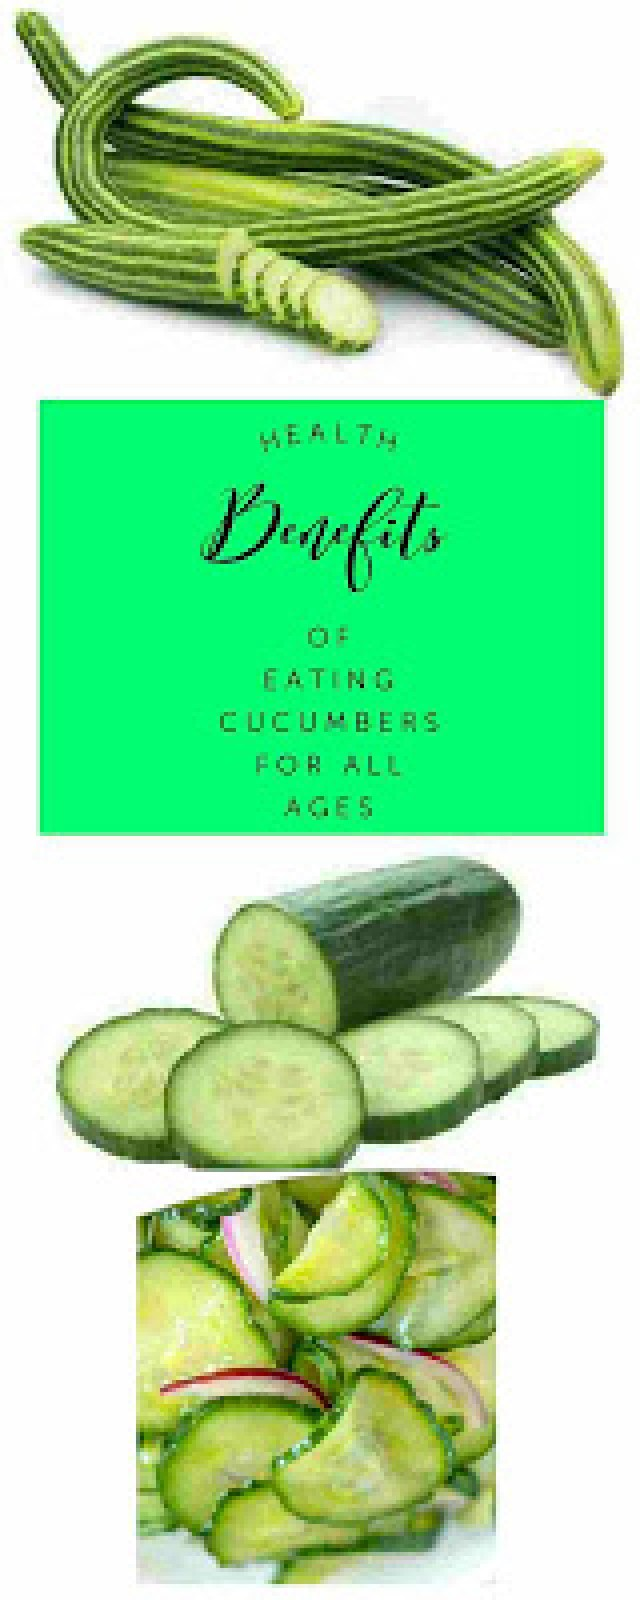 Health Benefits of Eating Cucumbers For All Ages